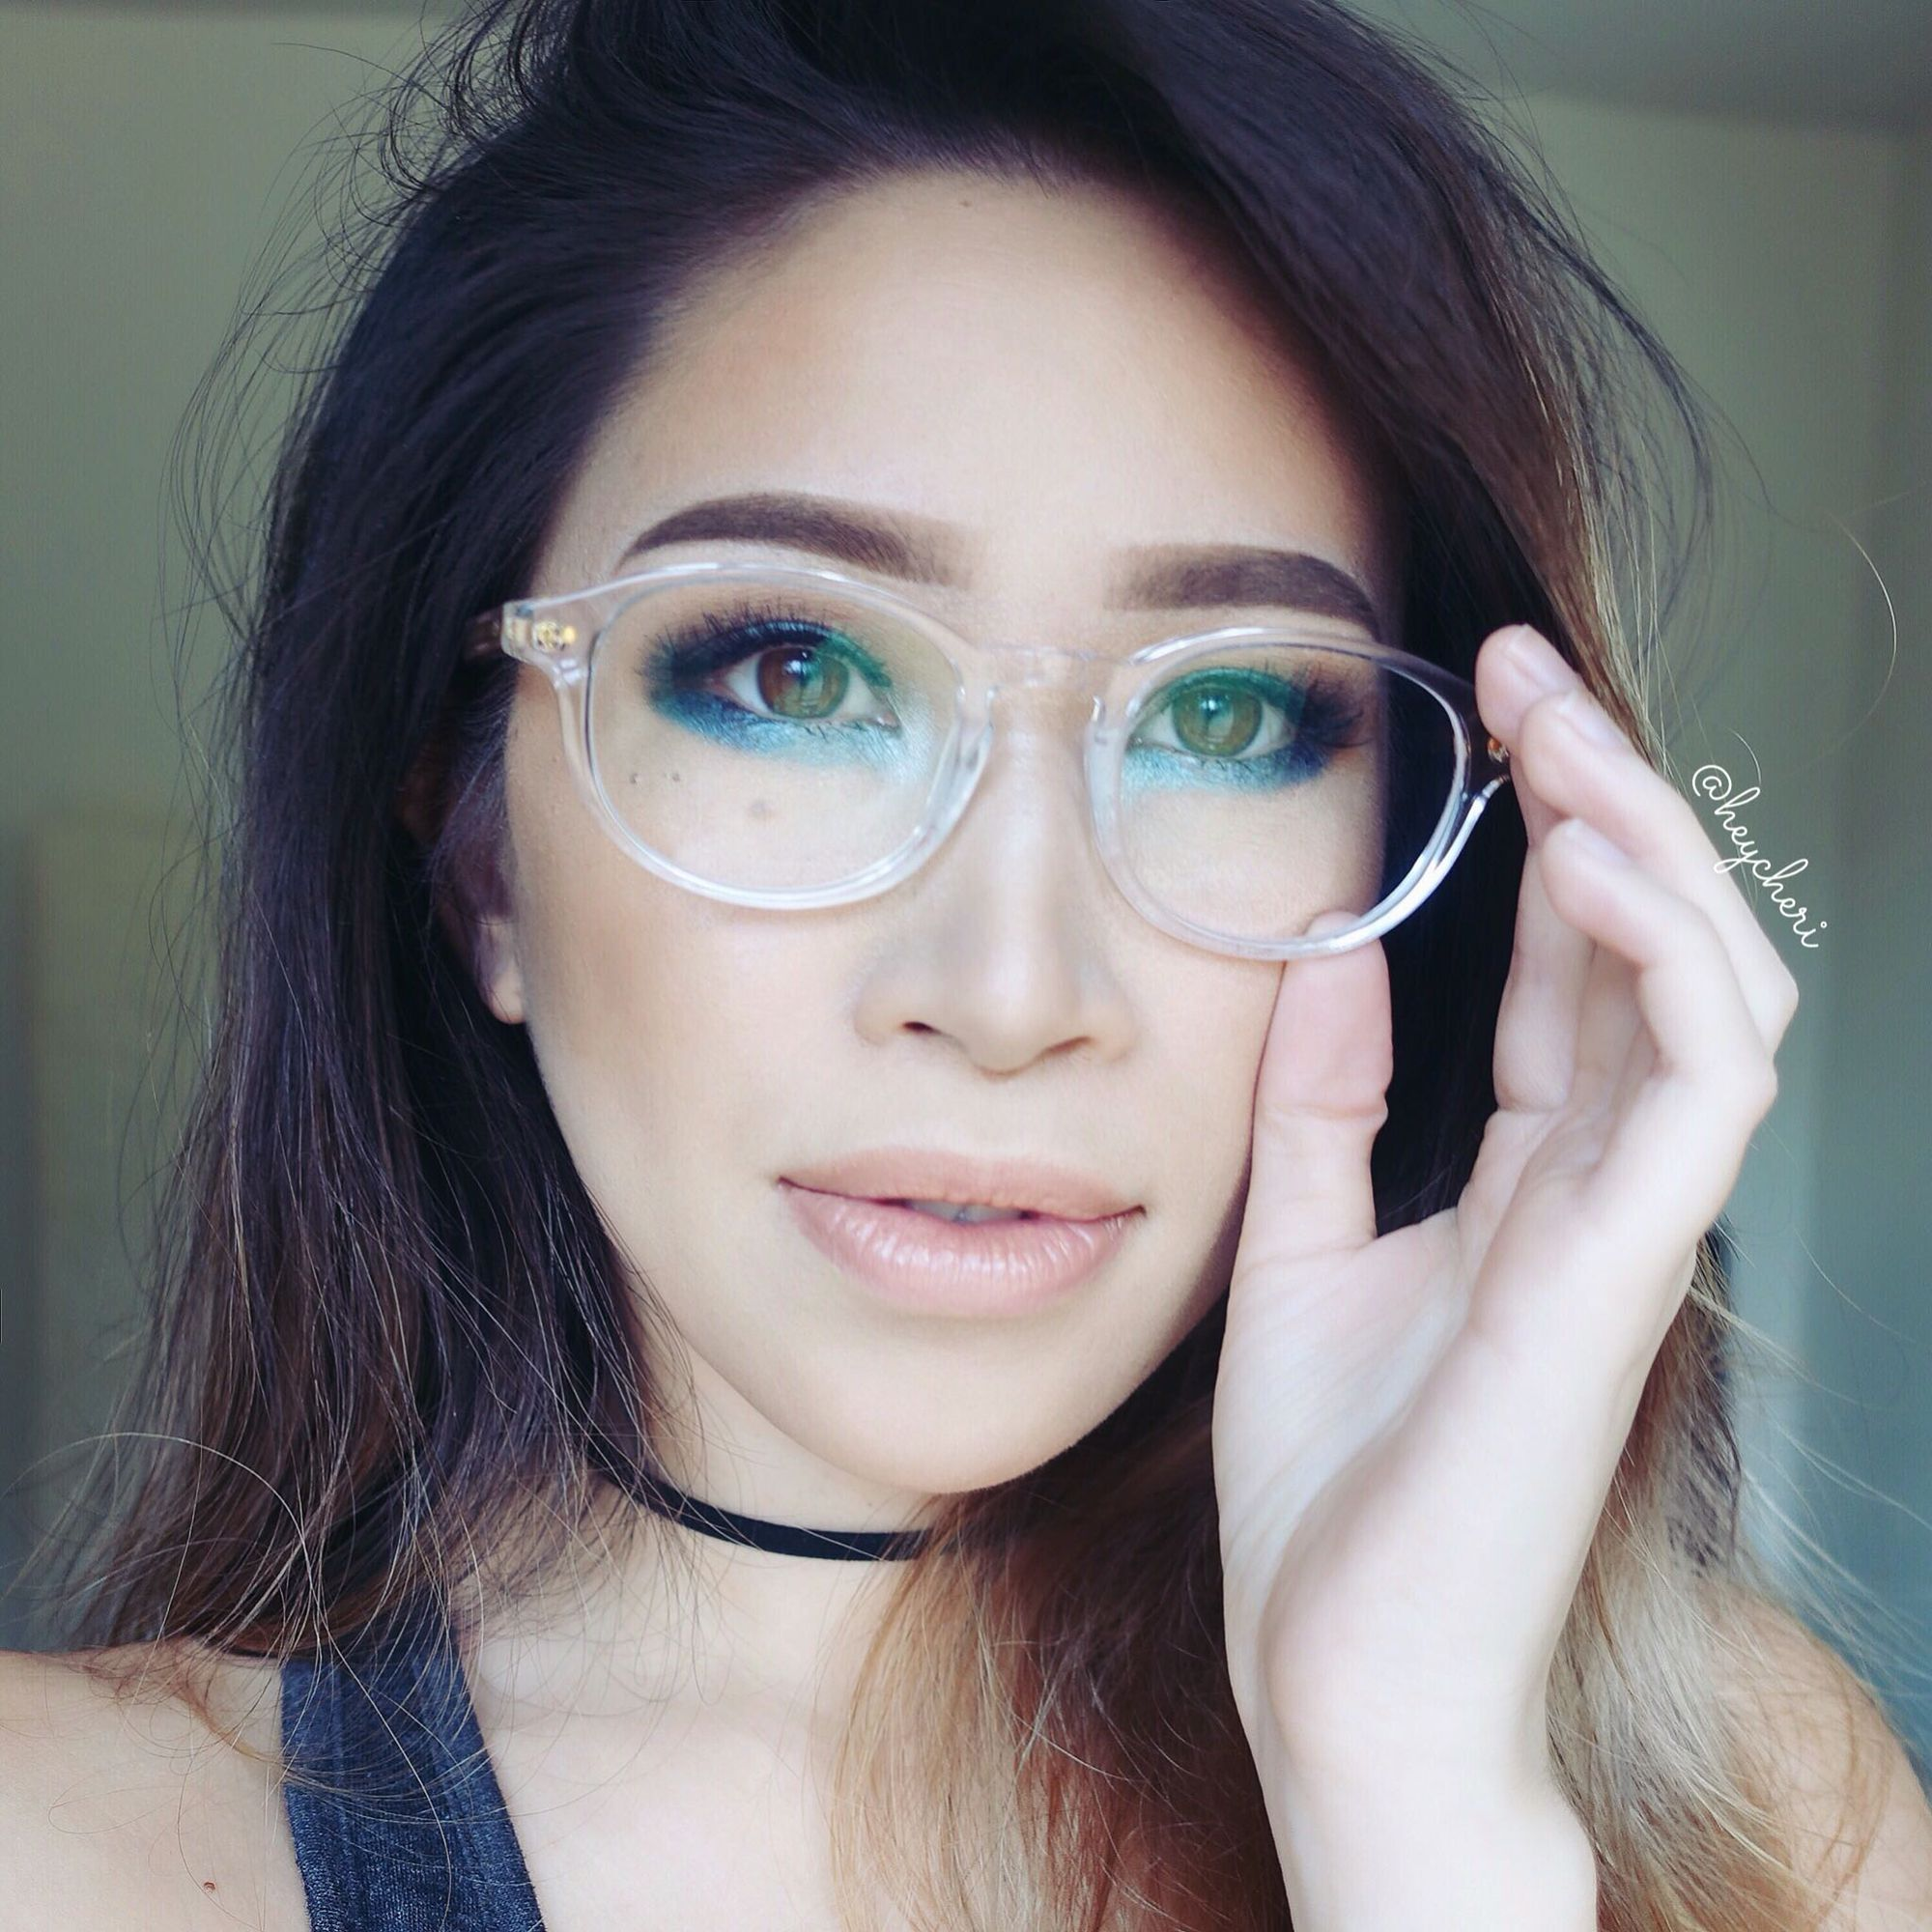 527bf7f337 So excited to rock these JINS eyewear clear glasses in my new bright &  colorful makeup for glasses tutorial on YouTube! It goes up next week.